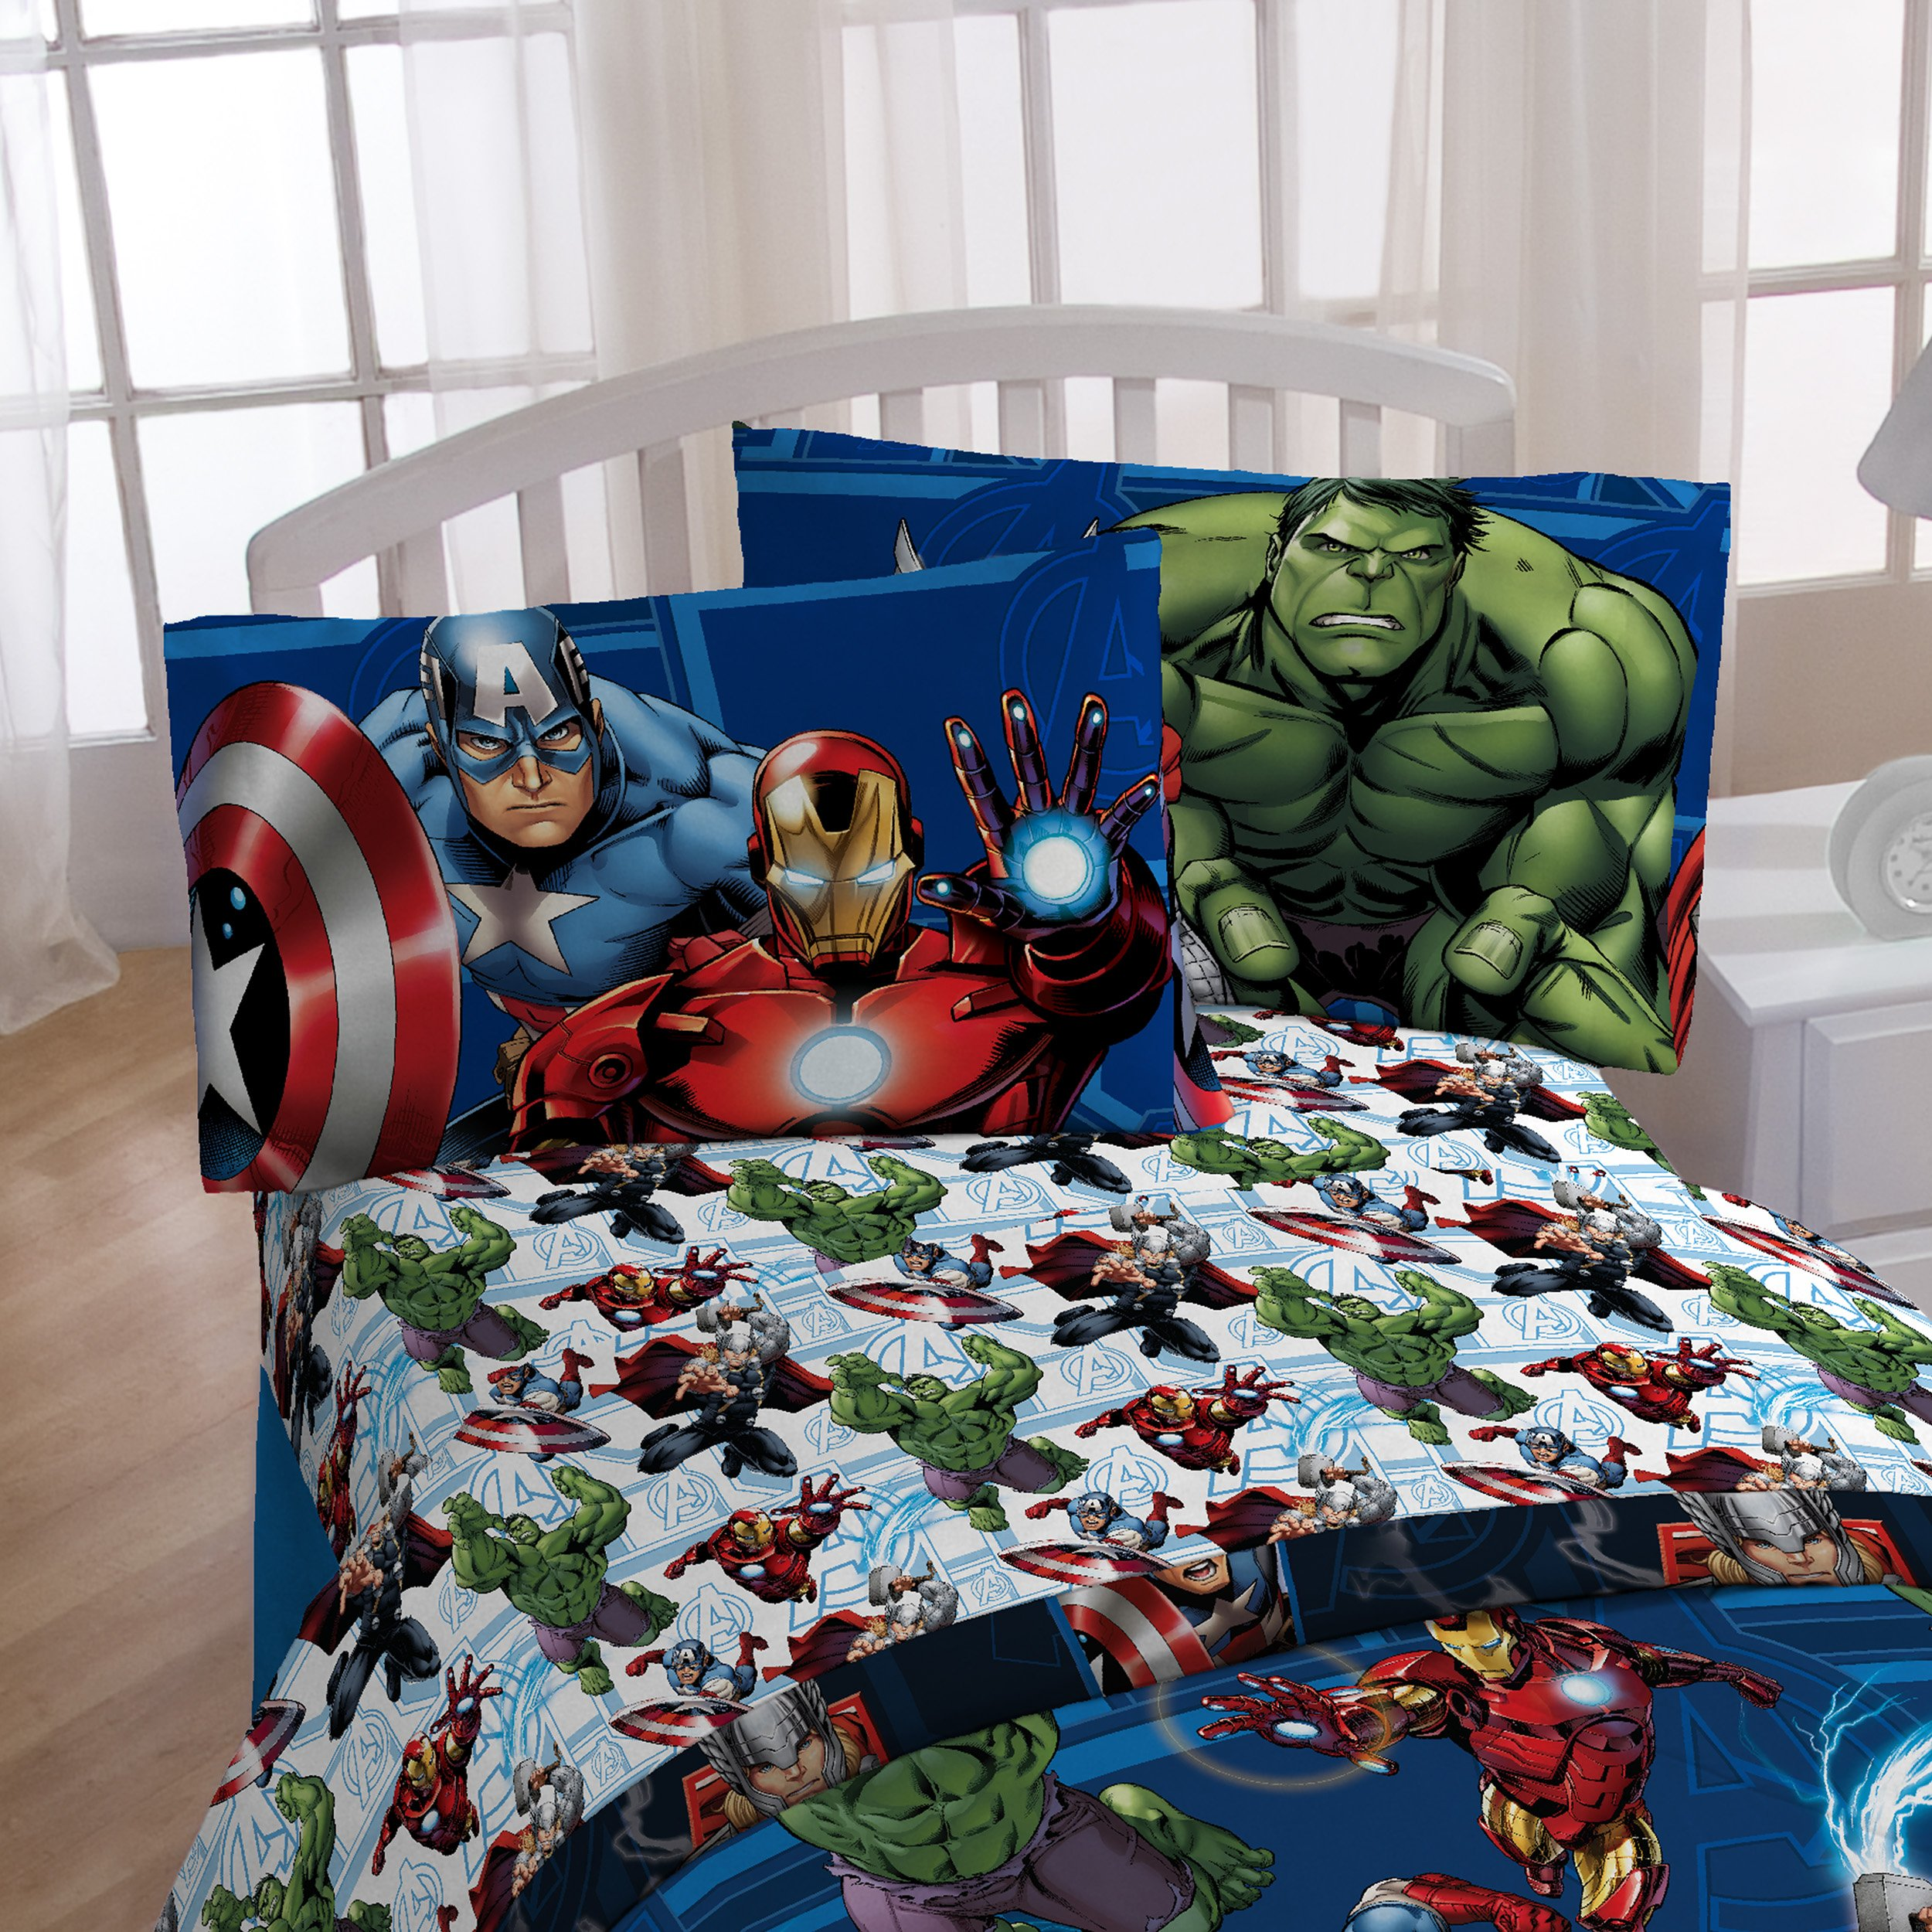 Marvel Avengers Heroic Age Blue/White 3 Piece Twin Sheet Set with Captain America, Thor, Ironman & Hulk by Marvel (Image #4)